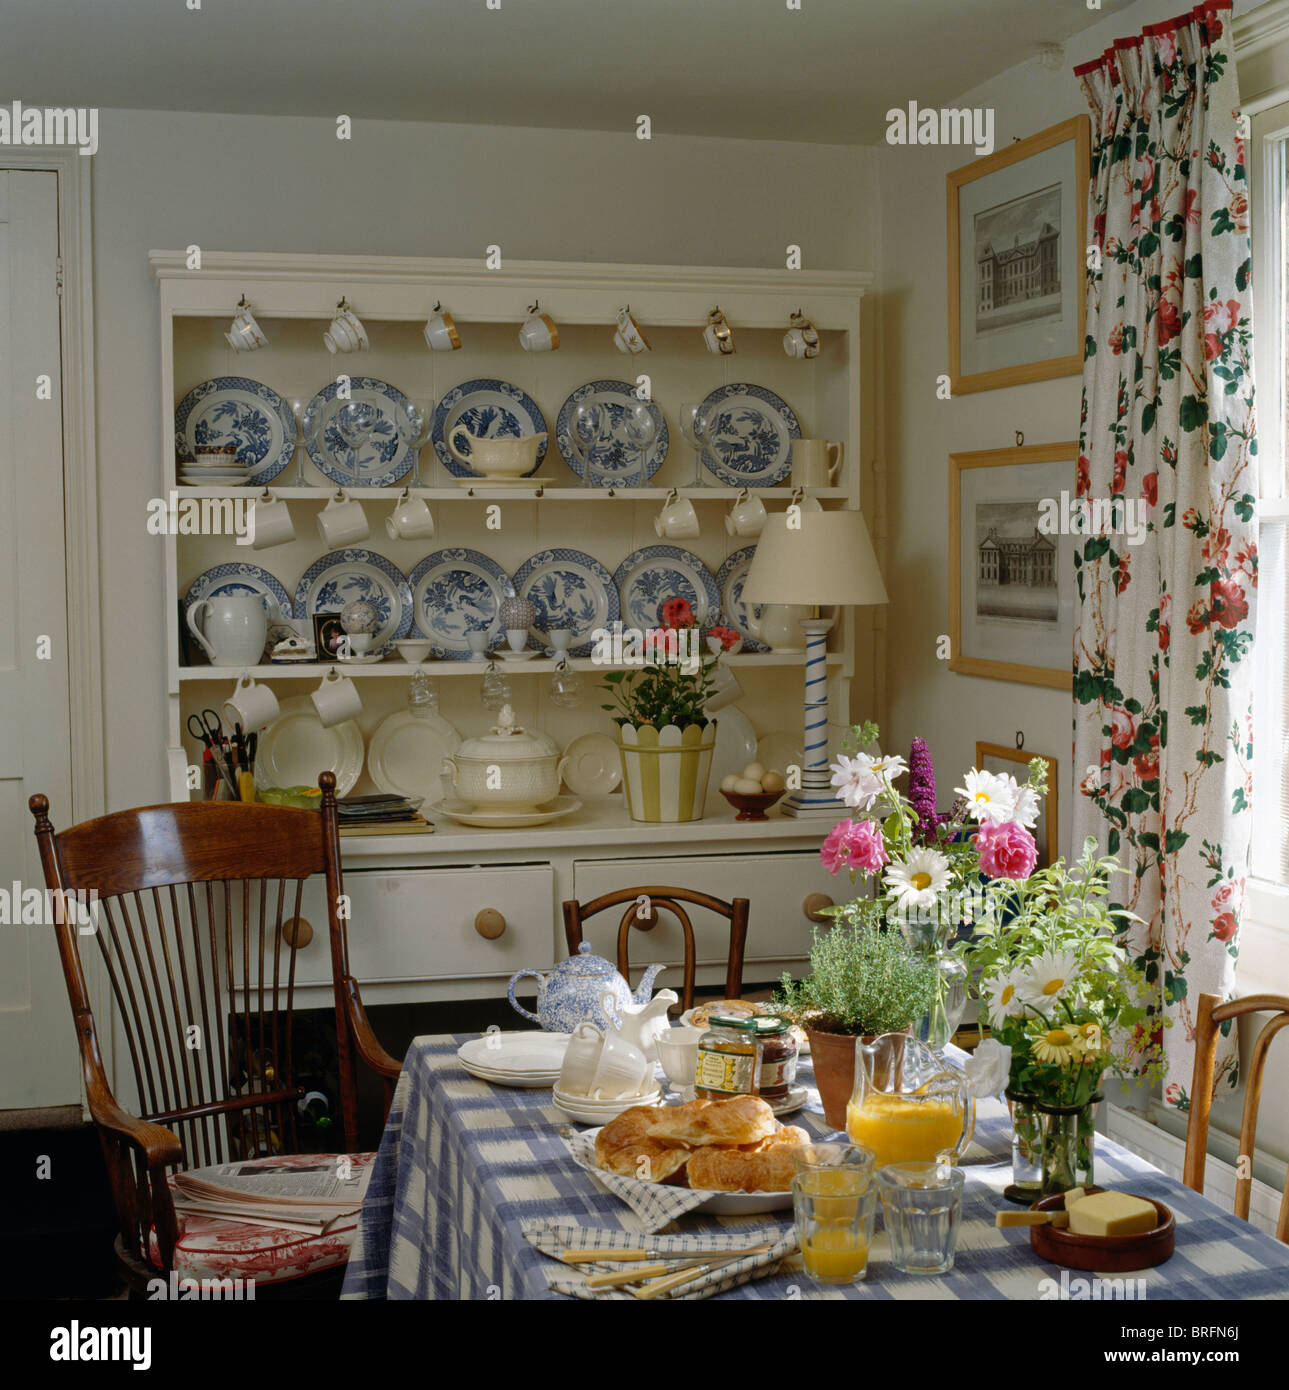 Blue White China Collection On Cream Dresser In Cottage Dining Room With Table Set For Breakfast Checked Cloth